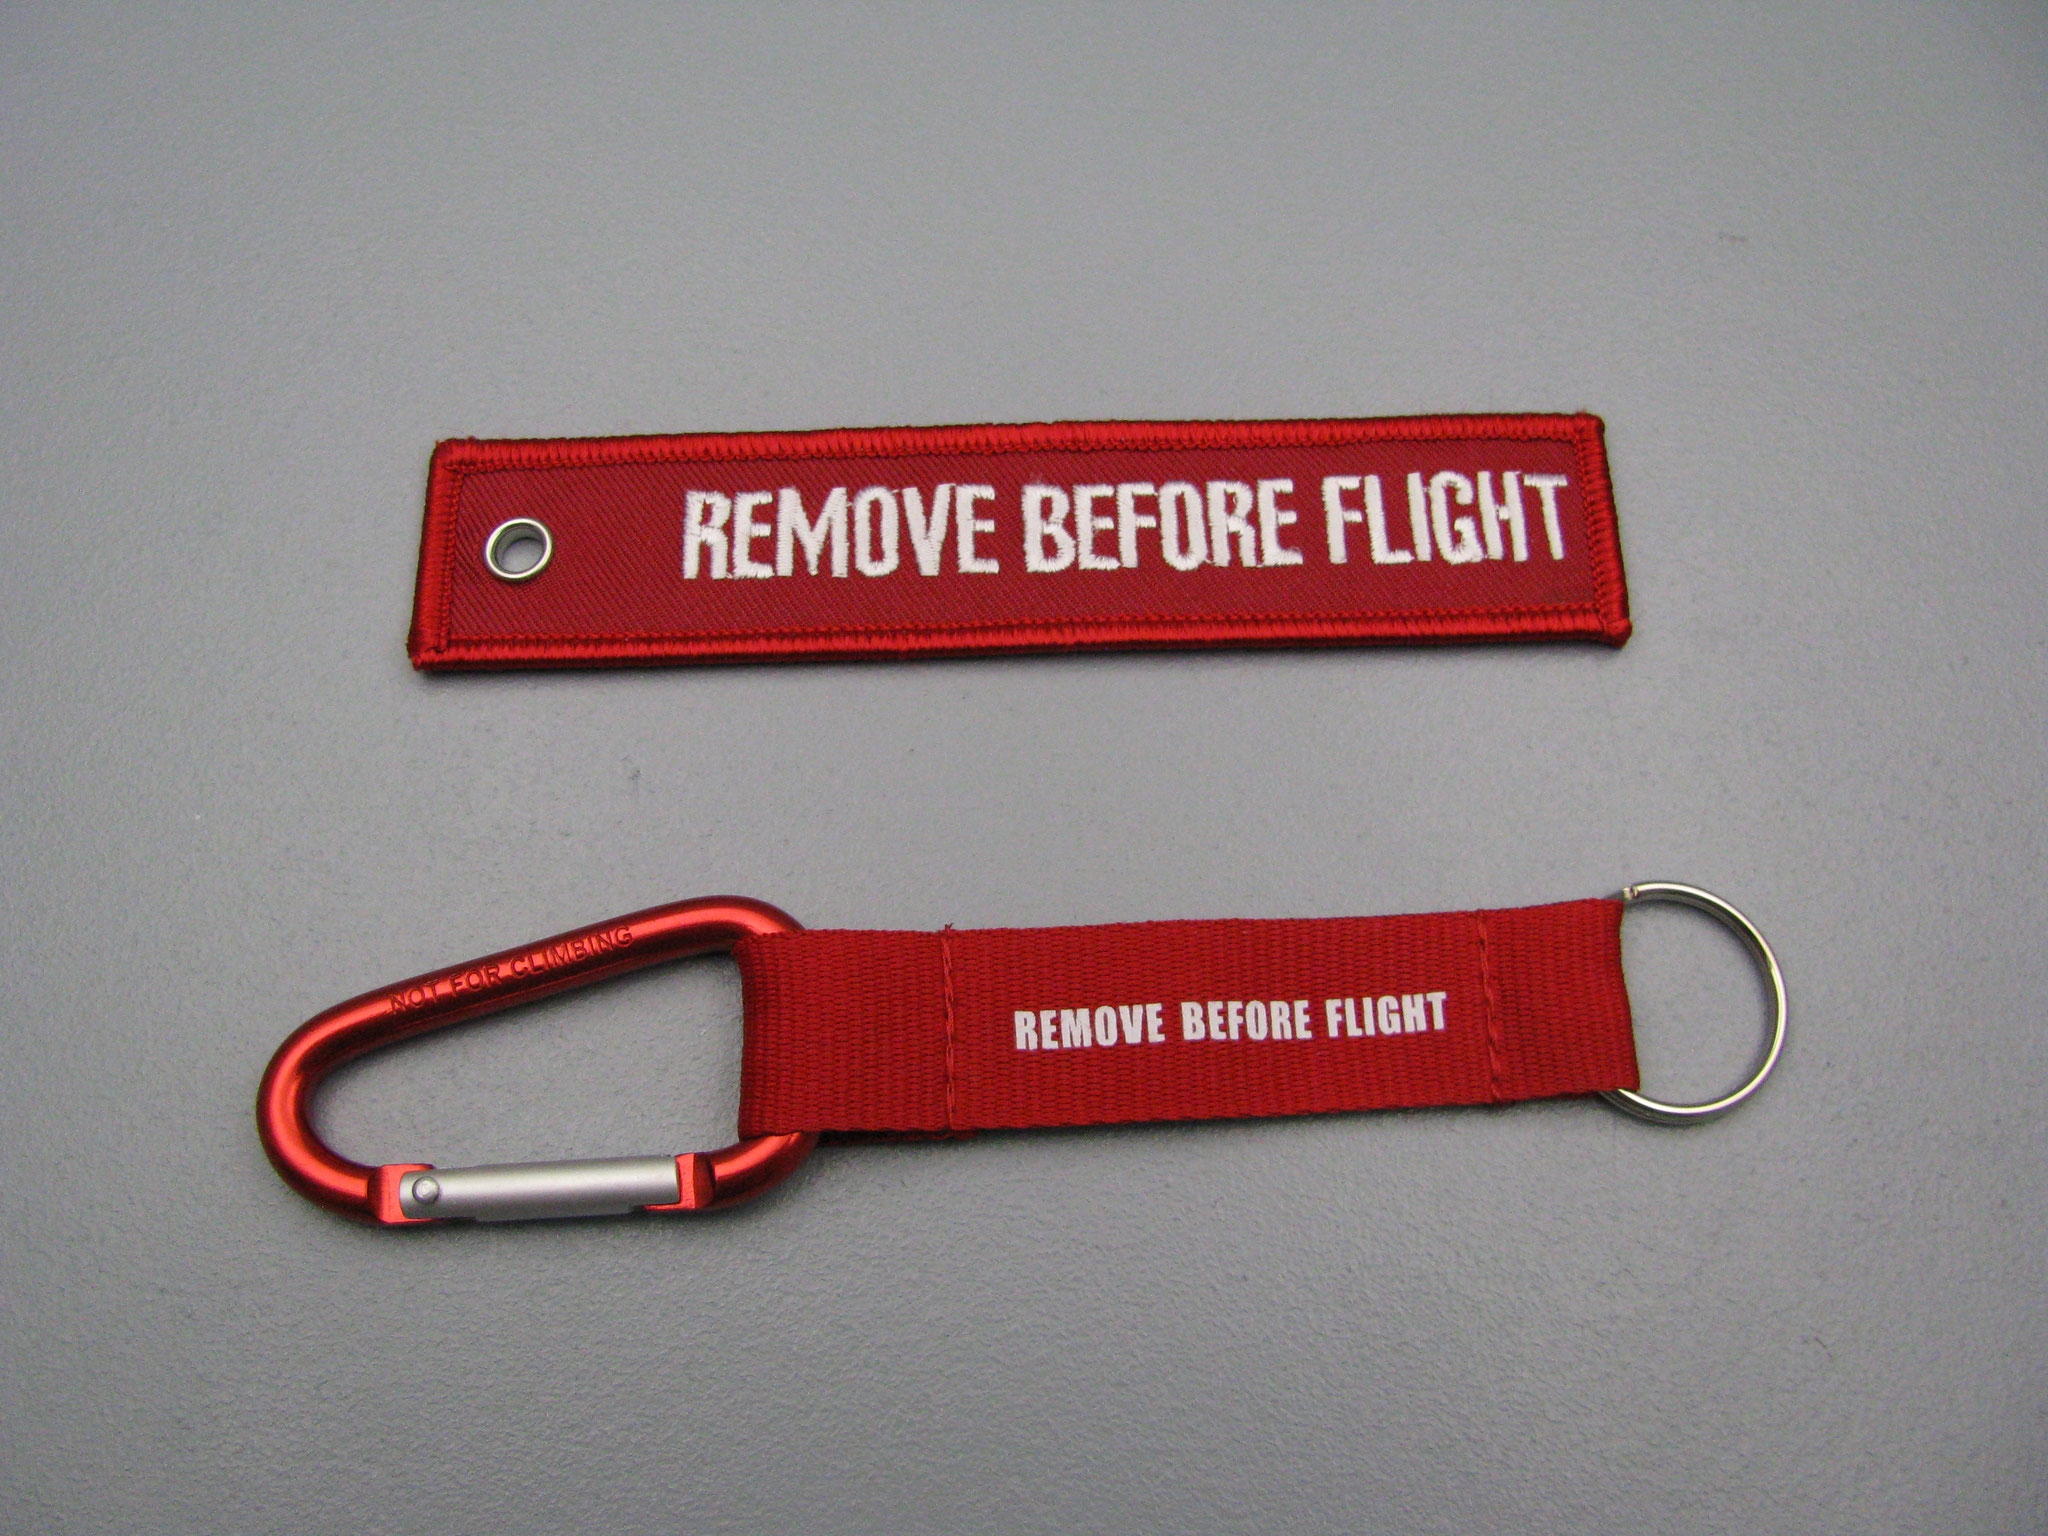 Kult: REMOVE BEFORE FLIGHT